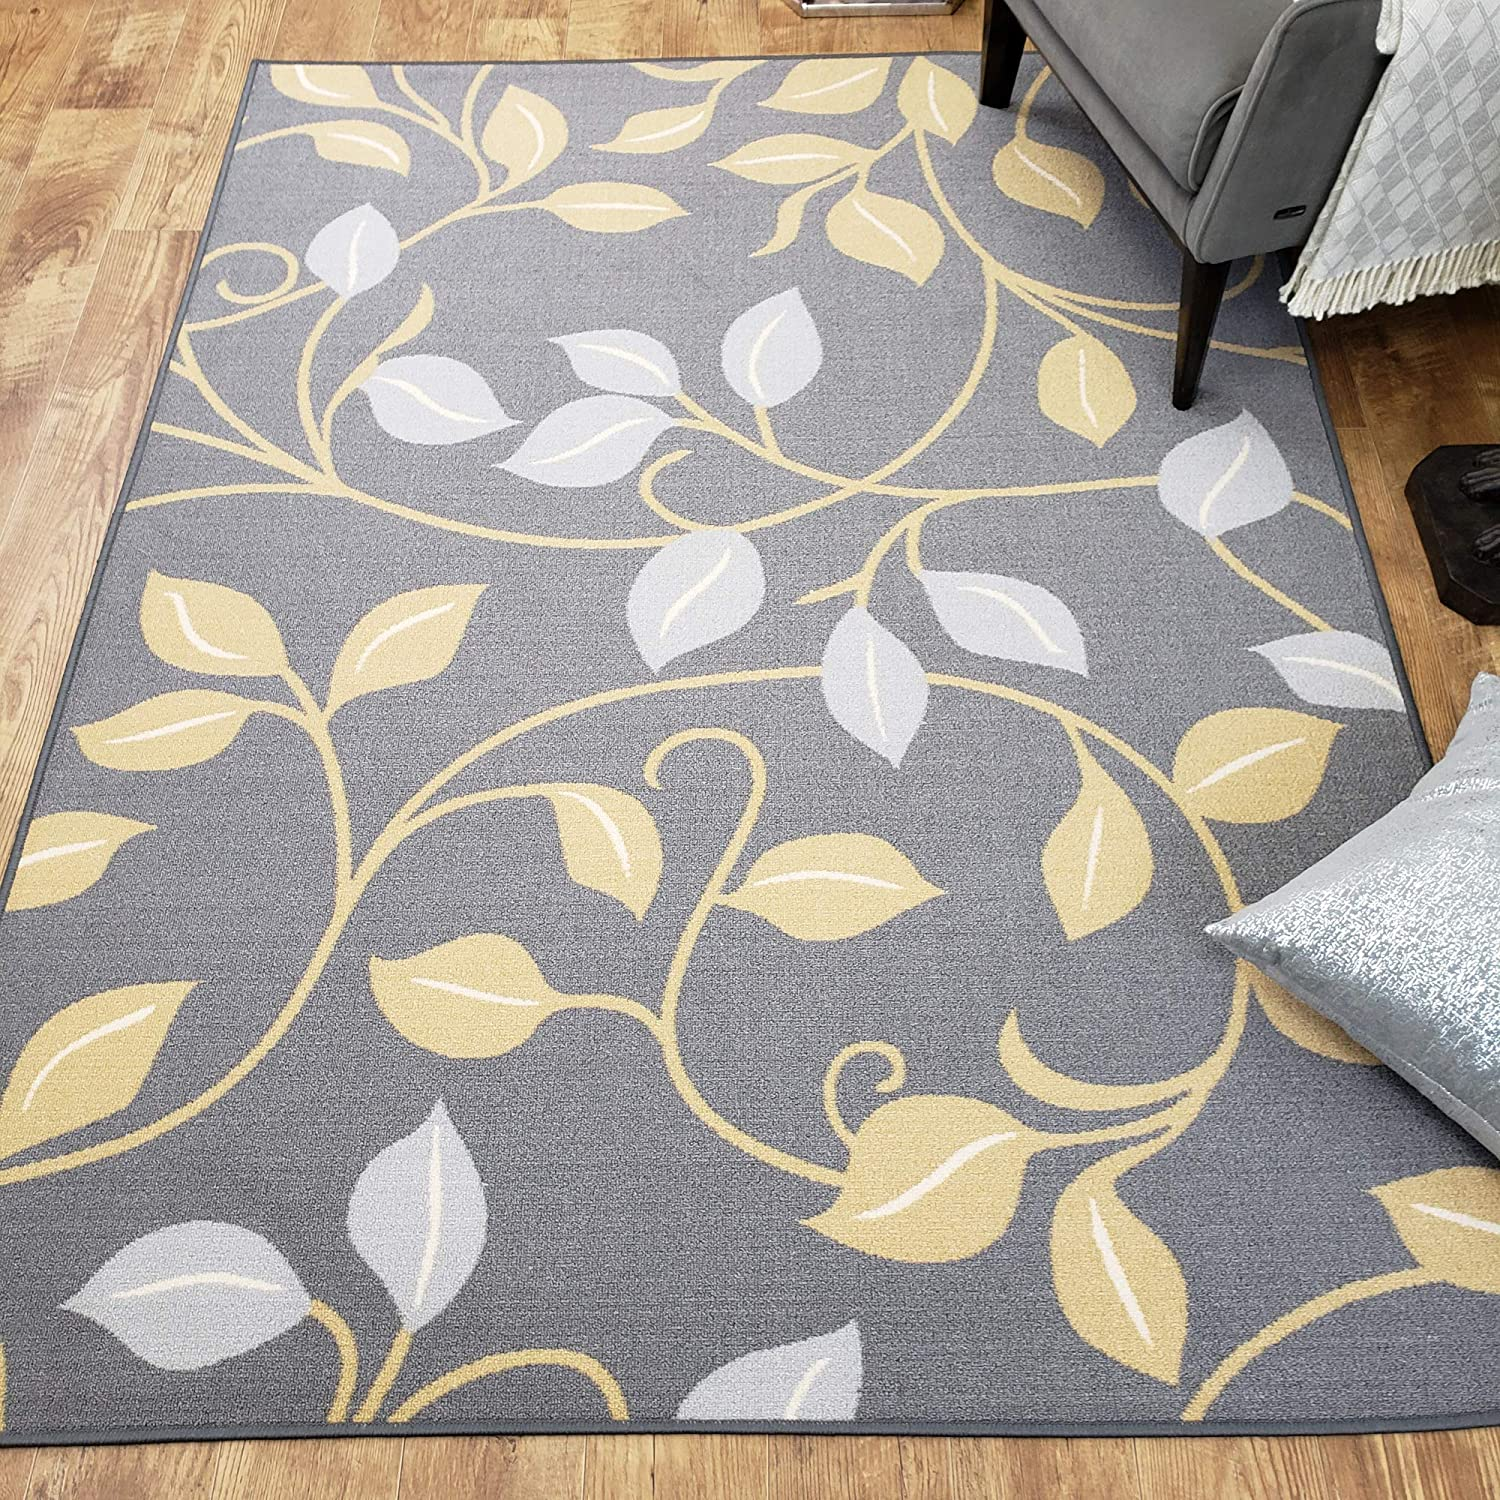 Area Rug 3x5 Gray Floral Kitchen Rugs and mats | Rubber Backed Non Skid Rug Living Room Bathroom Nursery Home Decor Under Door Entryway Floor Non Slip Washable | Made in Europe